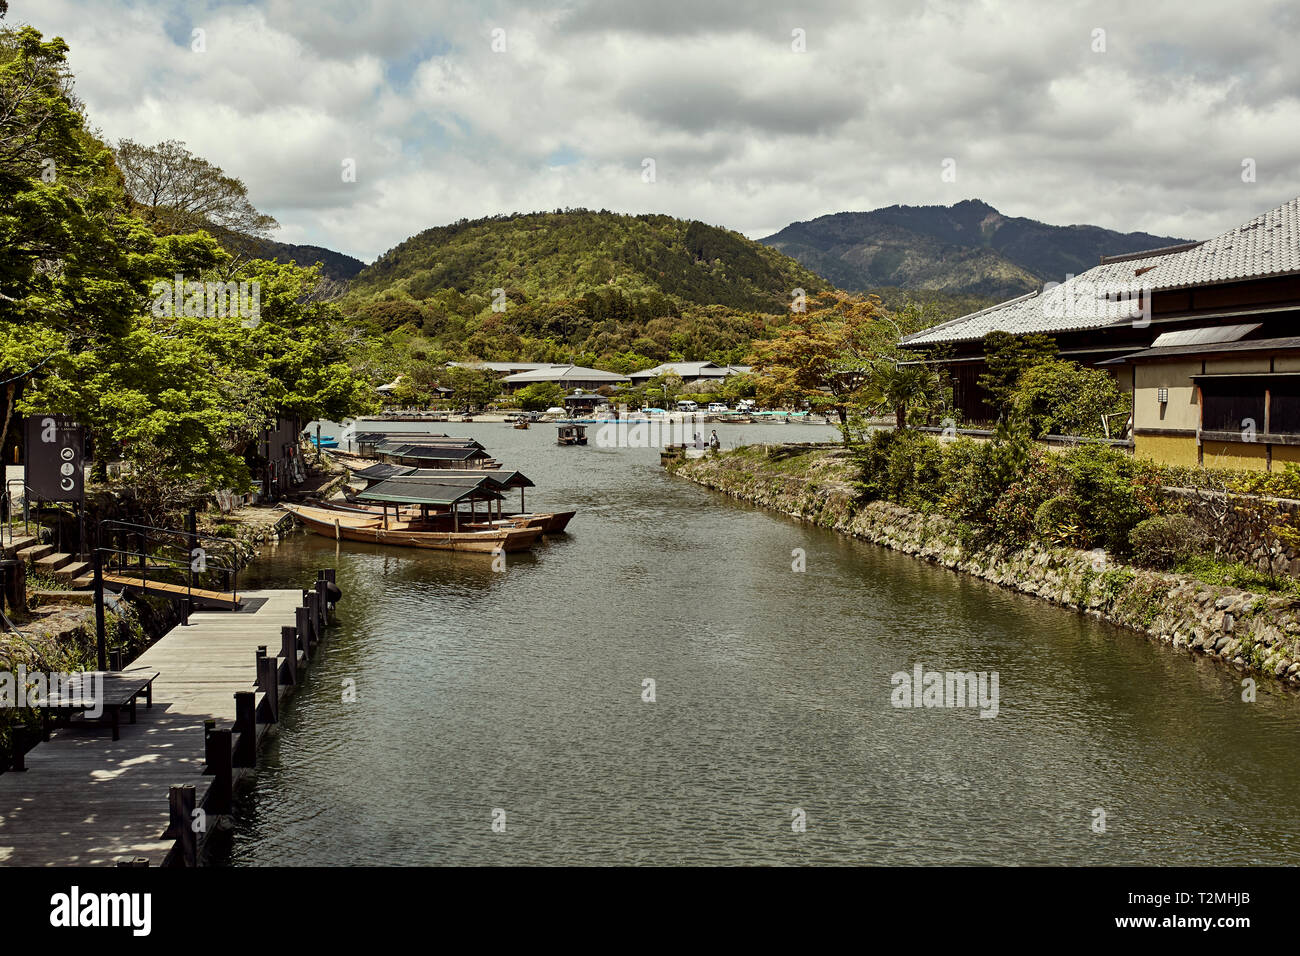 View of the Hozu River on a warm, Spring day in Arashiyama, Japan. - Stock Image